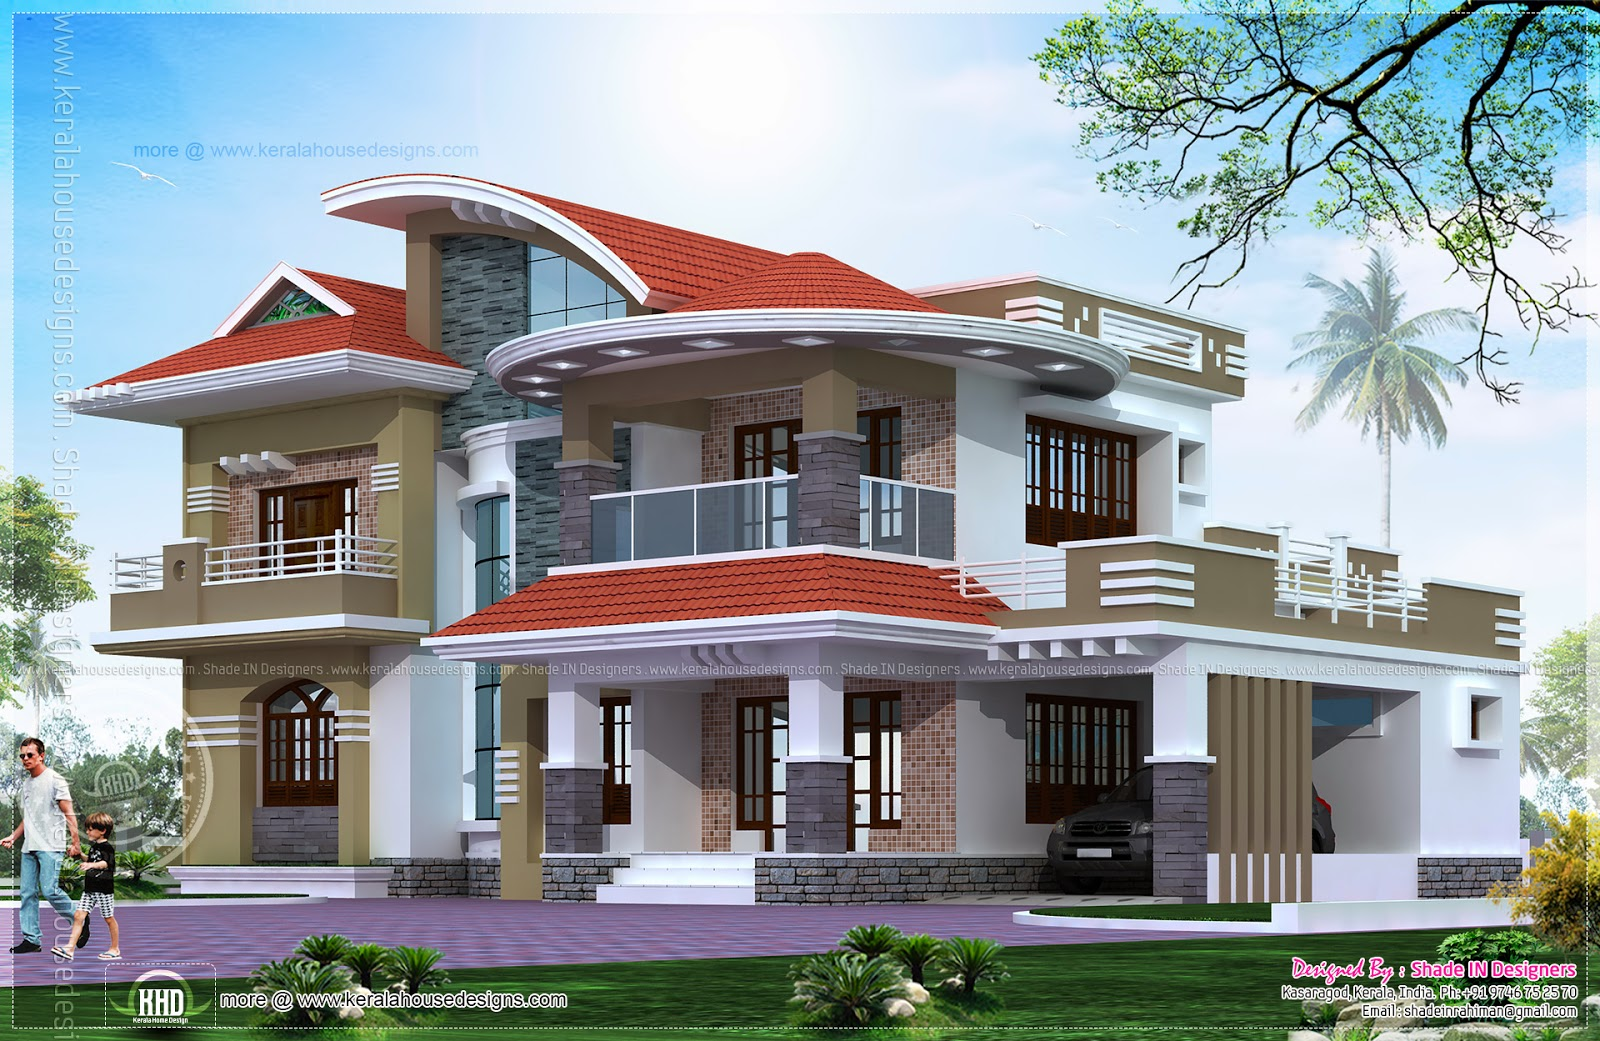 5 bedroom luxury house in kasaragod kerala home design for Luxury house plans with photos